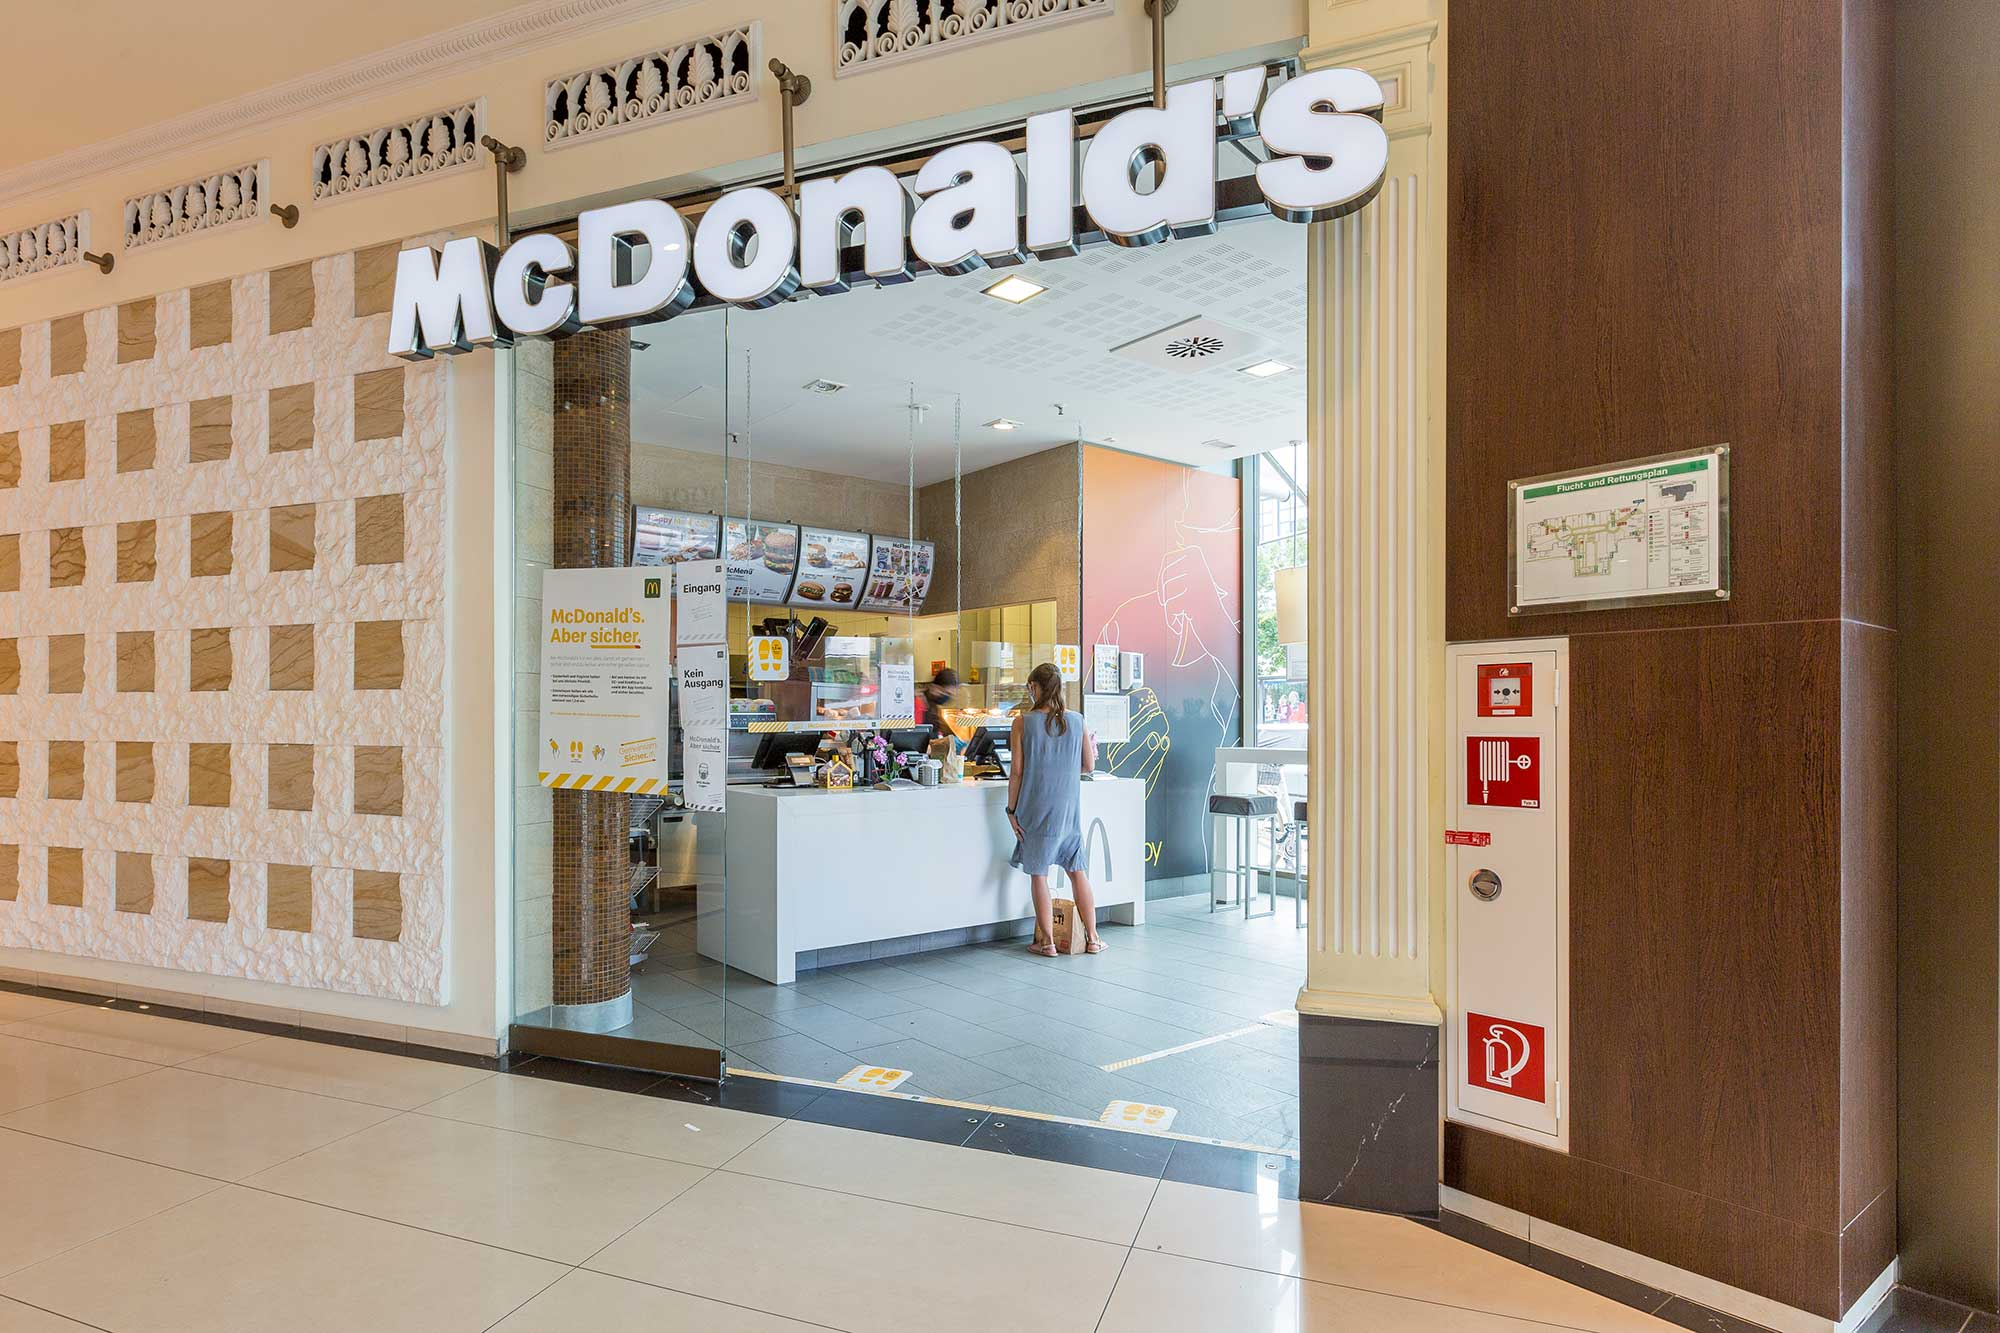 McDonalds in the Sankt Annen Galerie Brandenburg